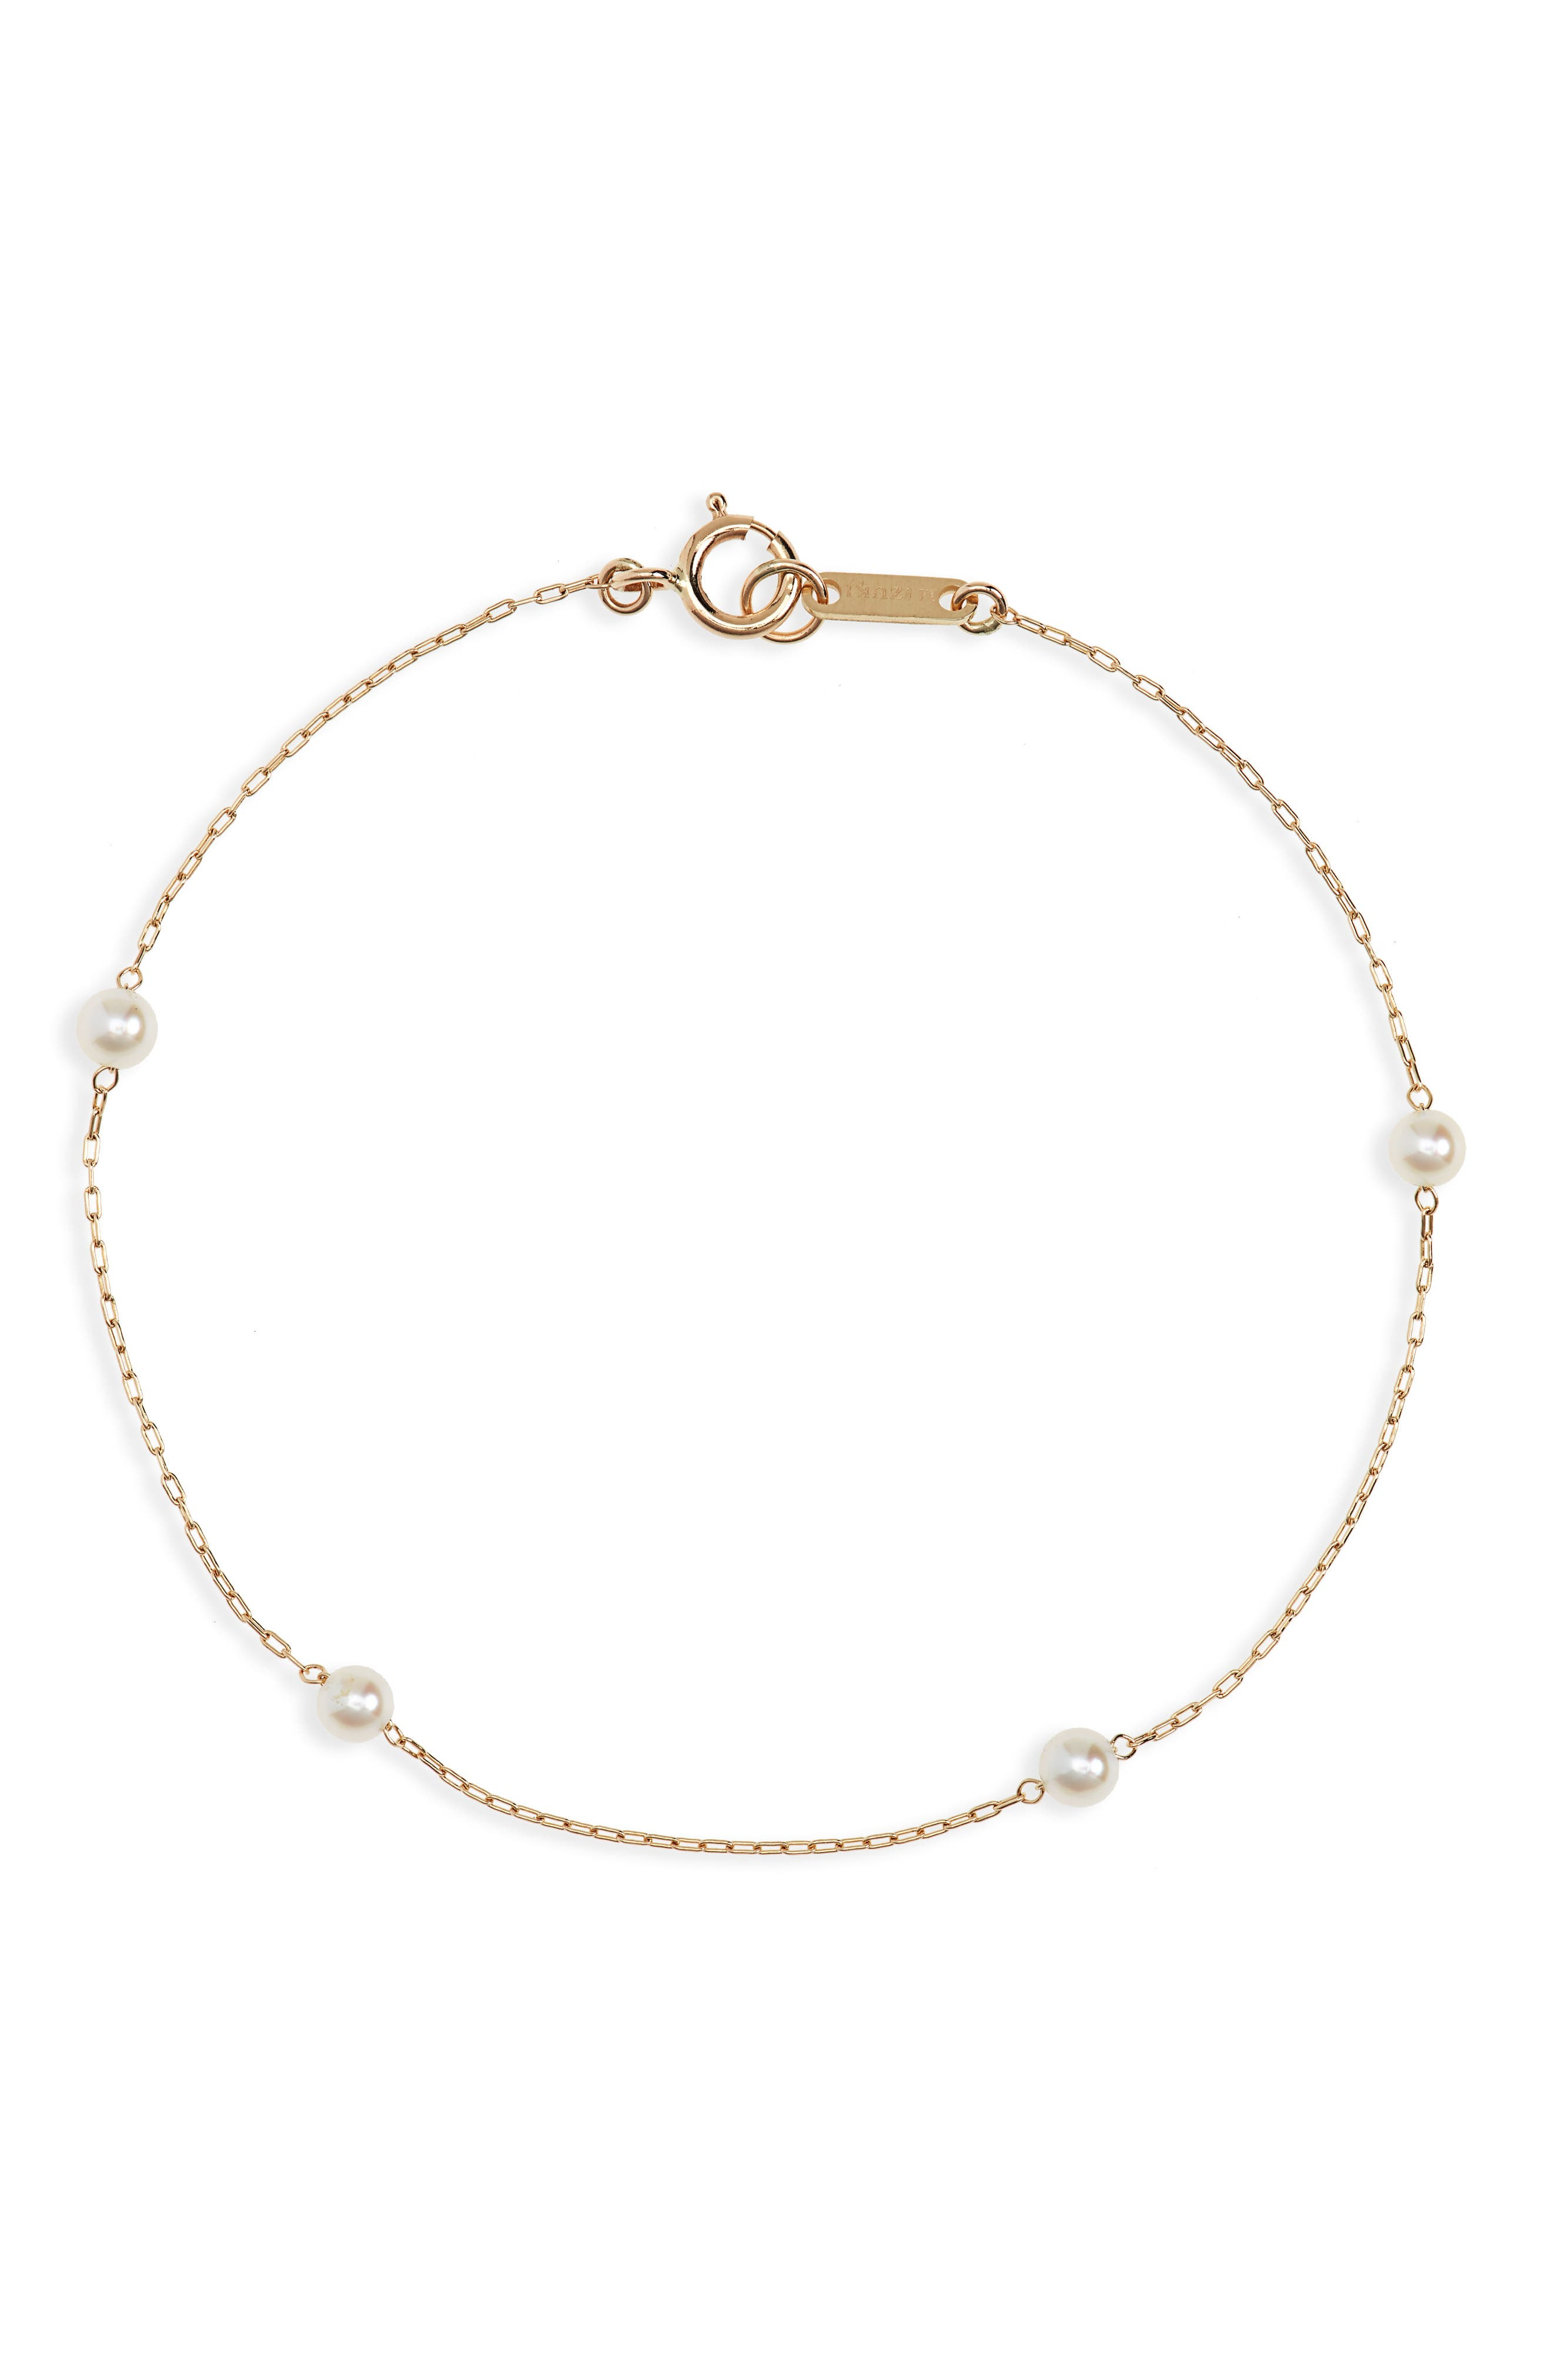 Genuine Pearl Station Bracelet,                             Main thumbnail 1, color,                             YELLOW GOLD/ PEARL